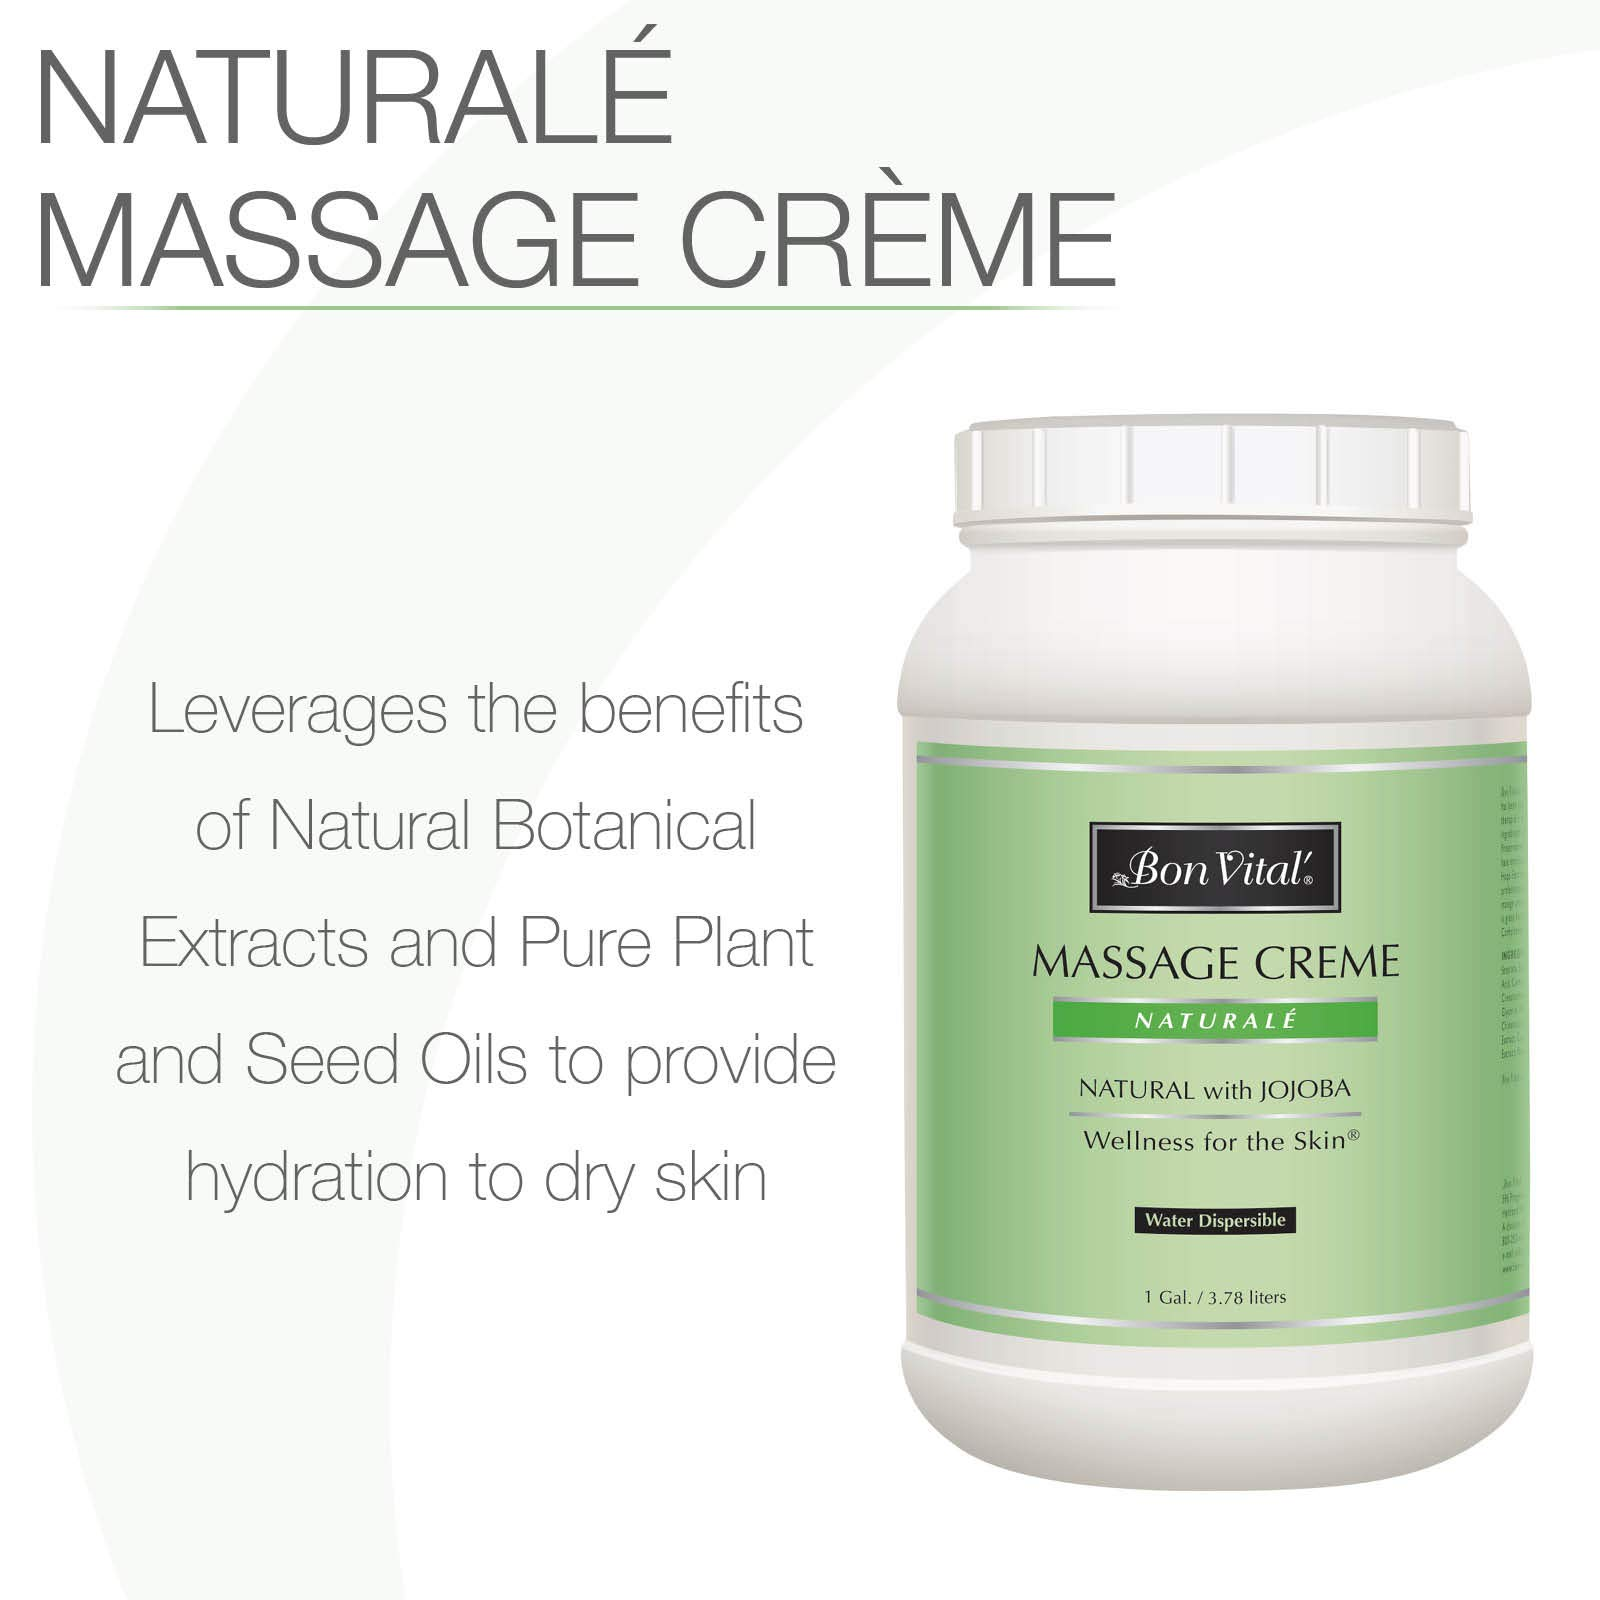 Bon Vital' Naturale Massage Crème, Professional Massage Therapy Cream with Natural Ingredients for an Earth-Friendly & Relaxing Massage, Full Body Daily Moisturizer for Smooth Skin, 1 Gallon Jar by Biofreeze (Image #2)